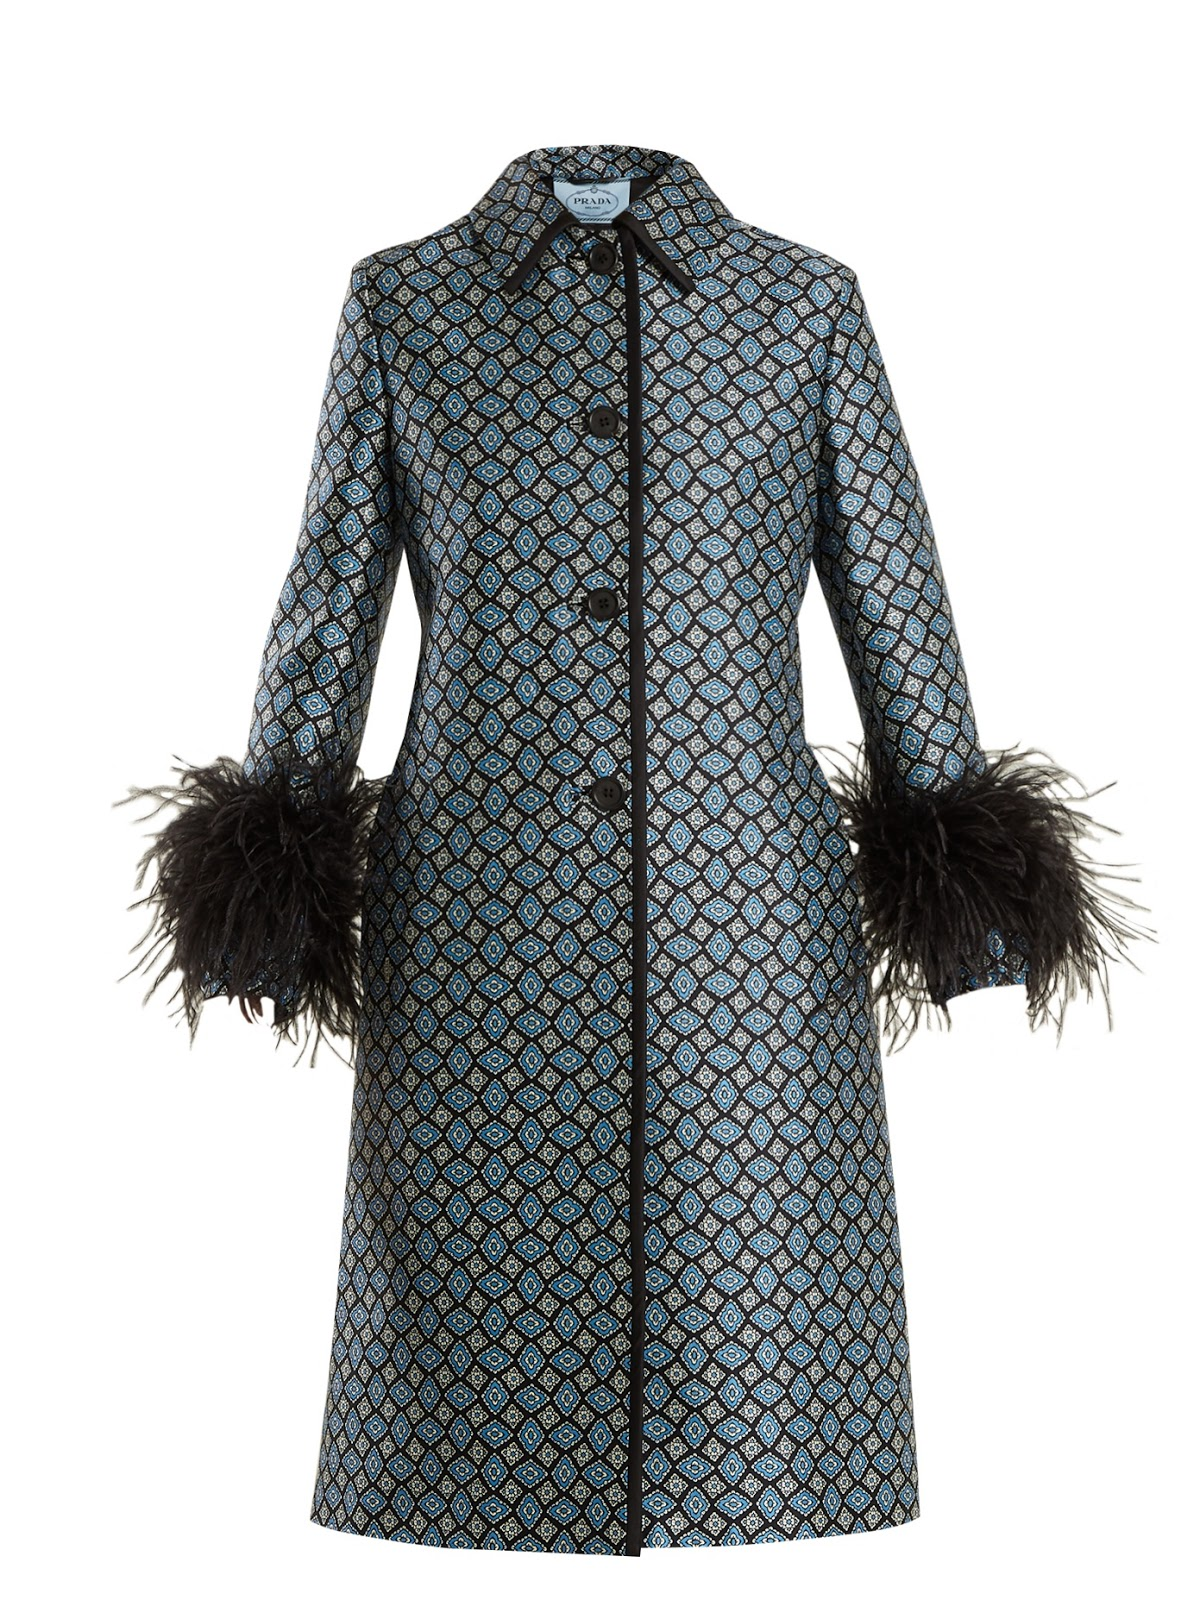 5f82c2443 Gucci pintucked butterfly-embellished belt coat, at matchesfashion.com.